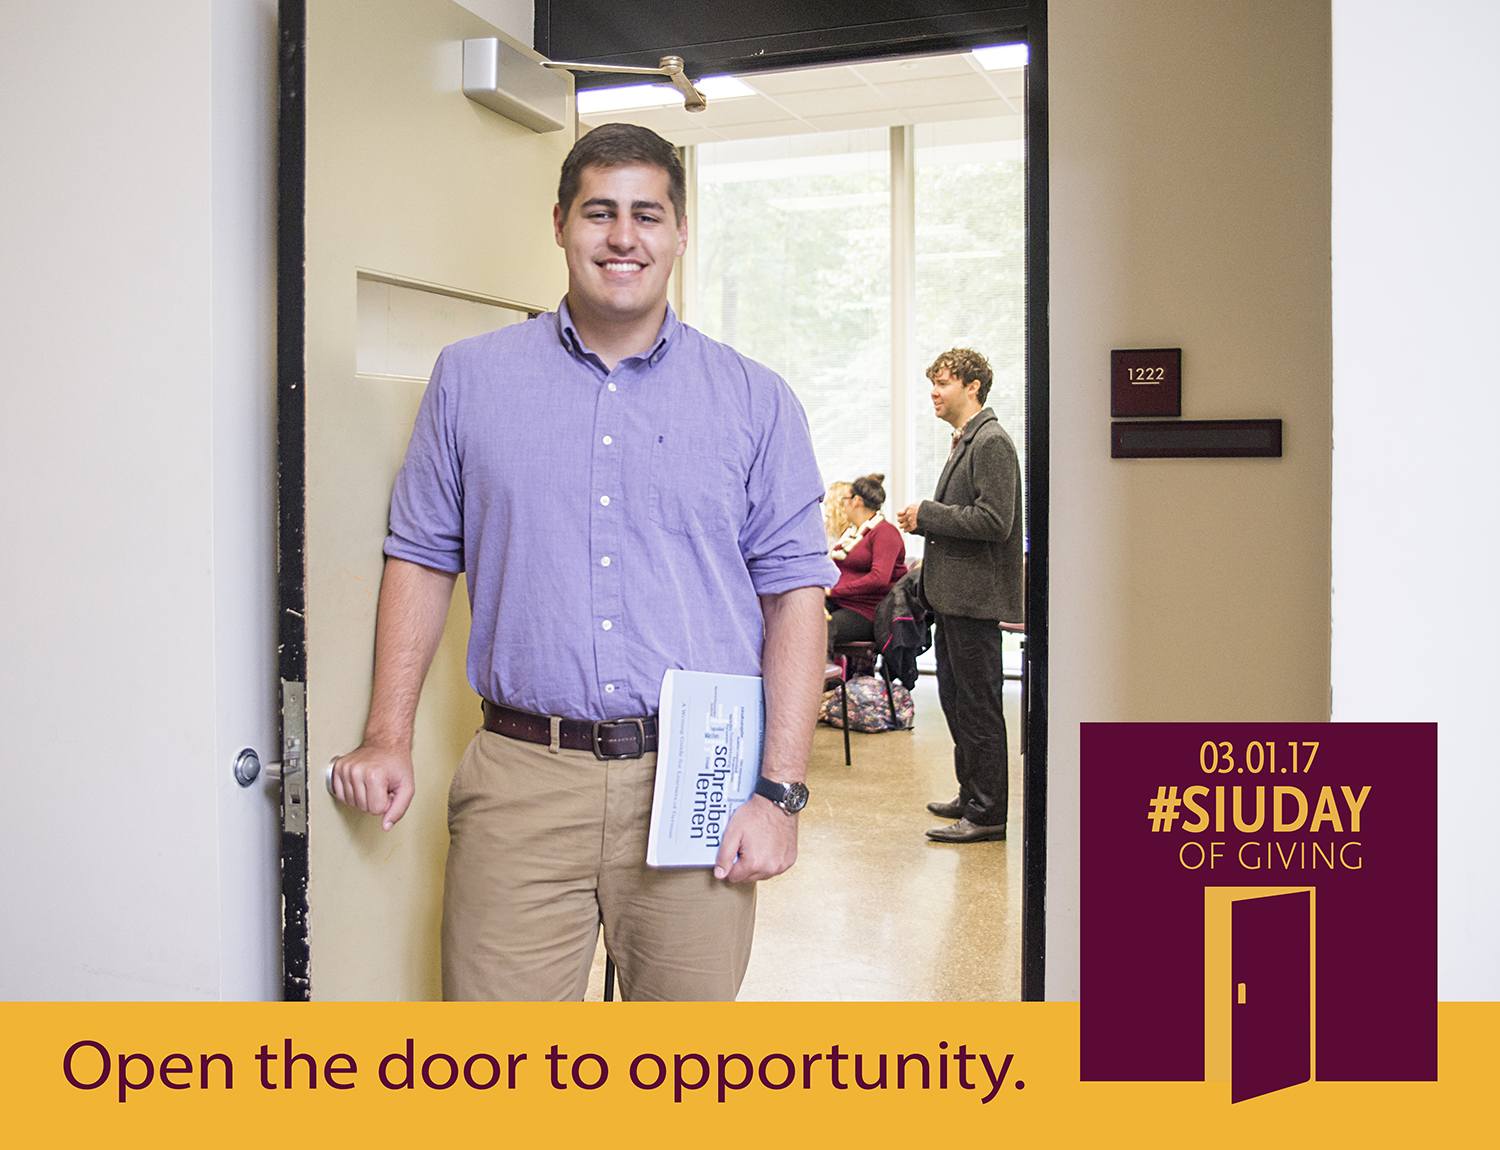 SIU Day of Giving - Open the door to opportunity at SIU College of Liberal Arts.